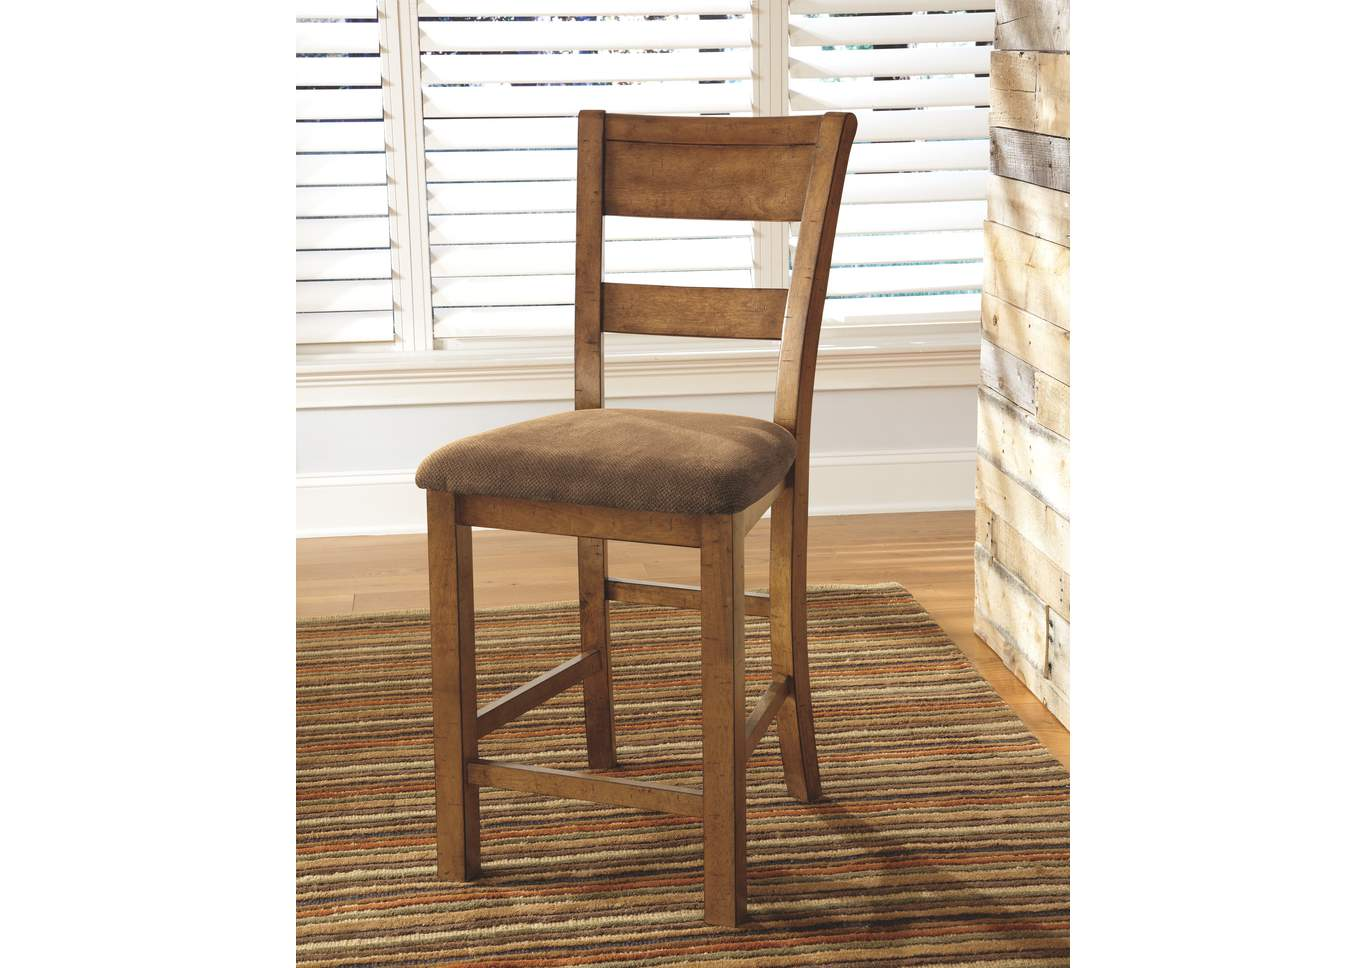 Krinden Upholstered Barstool (Set of 2),Signature Design By Ashley